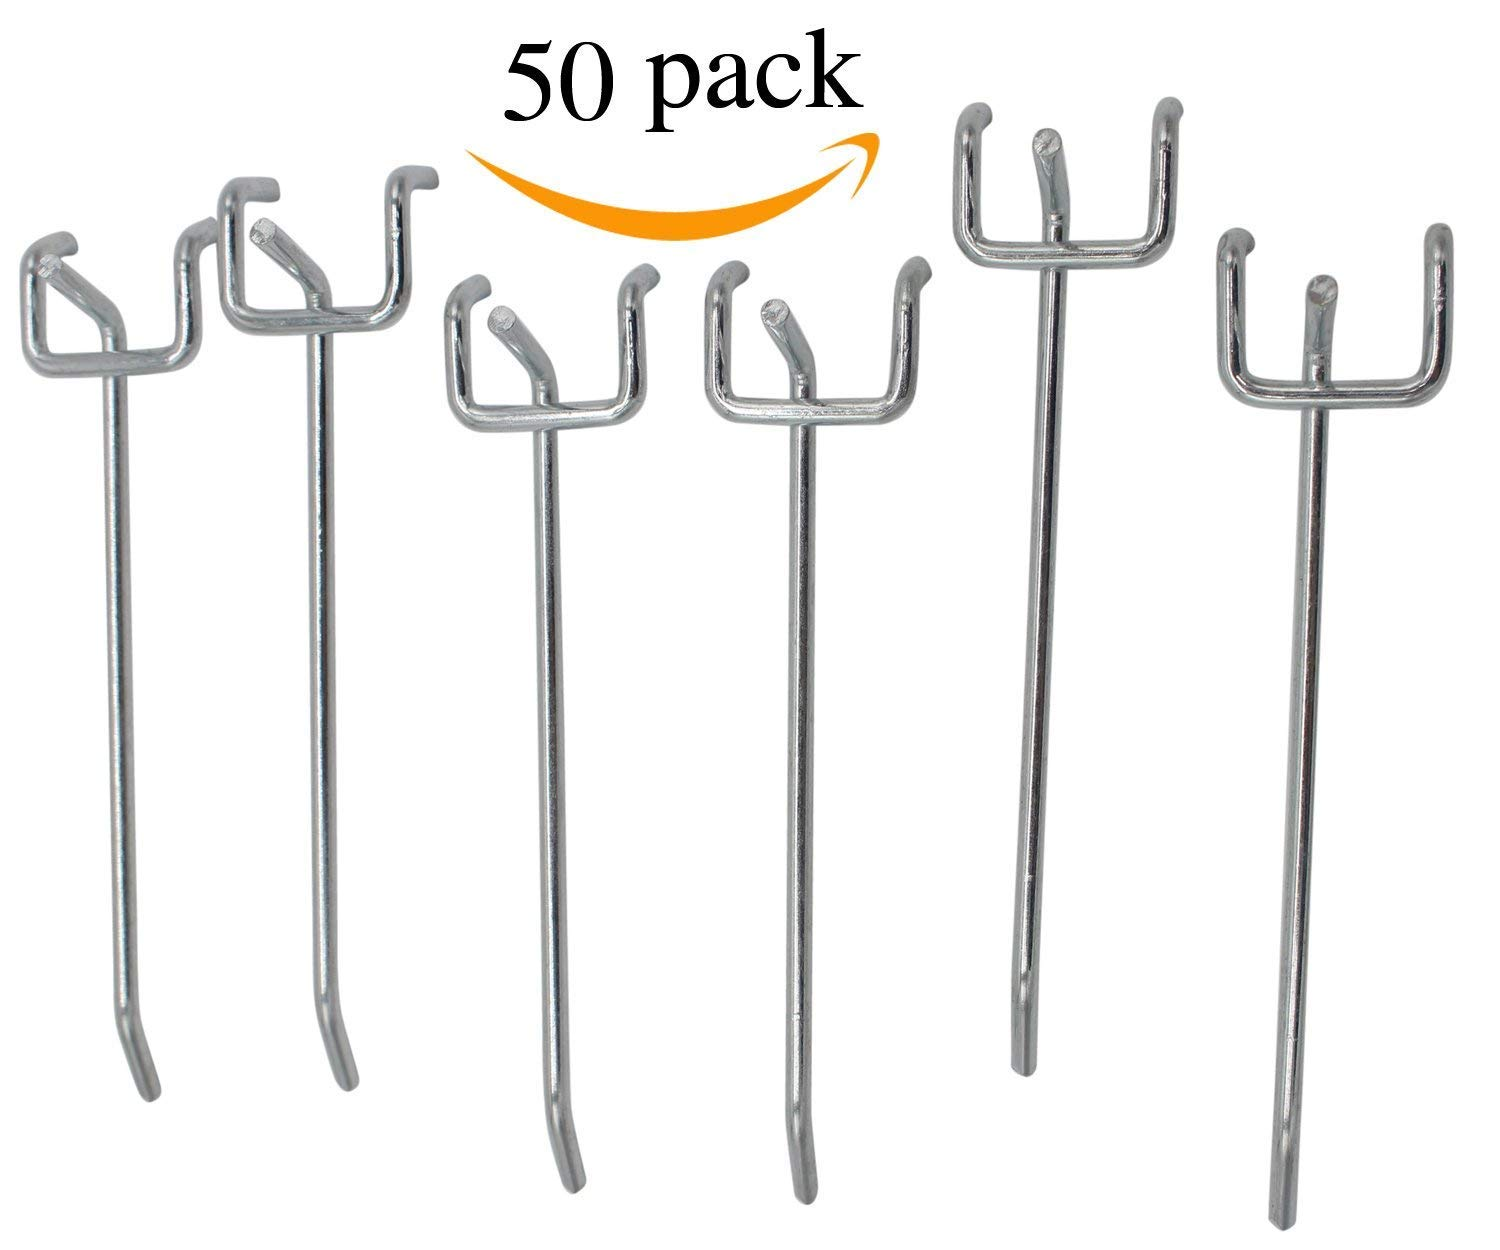 Calax 4-Inch Pegboard Hooks and Organizer Assortment 50-Piece (4 INCH)